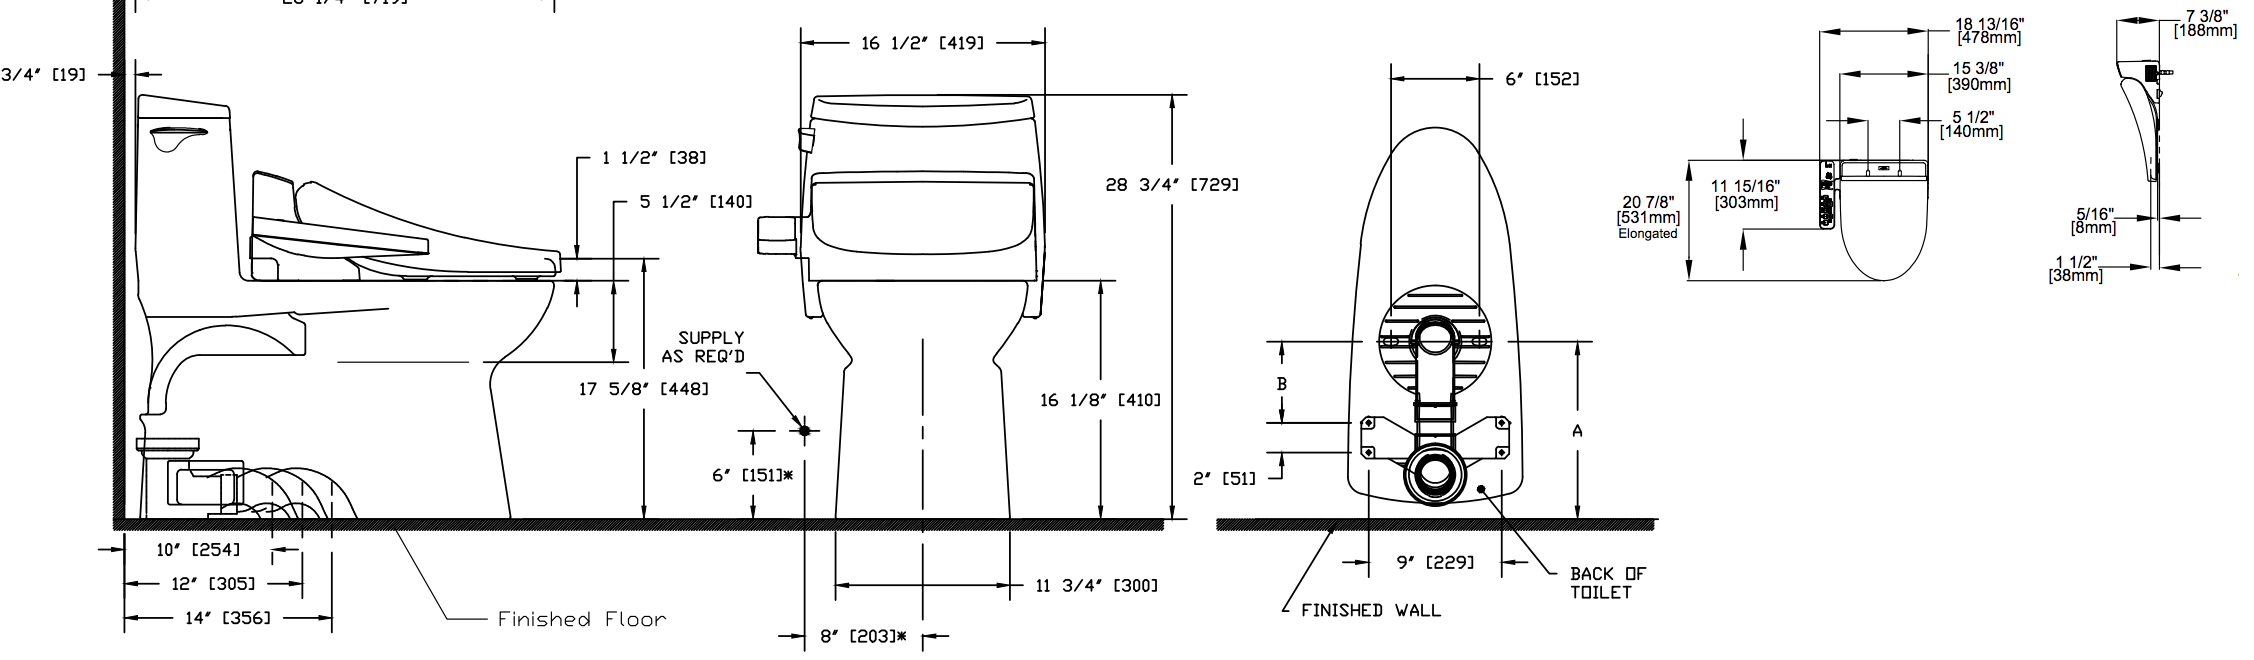 carlyle-ii-1g-washlet-c100-universal-height-one-piece-toilet-1.0-gpf-diagram-1.png